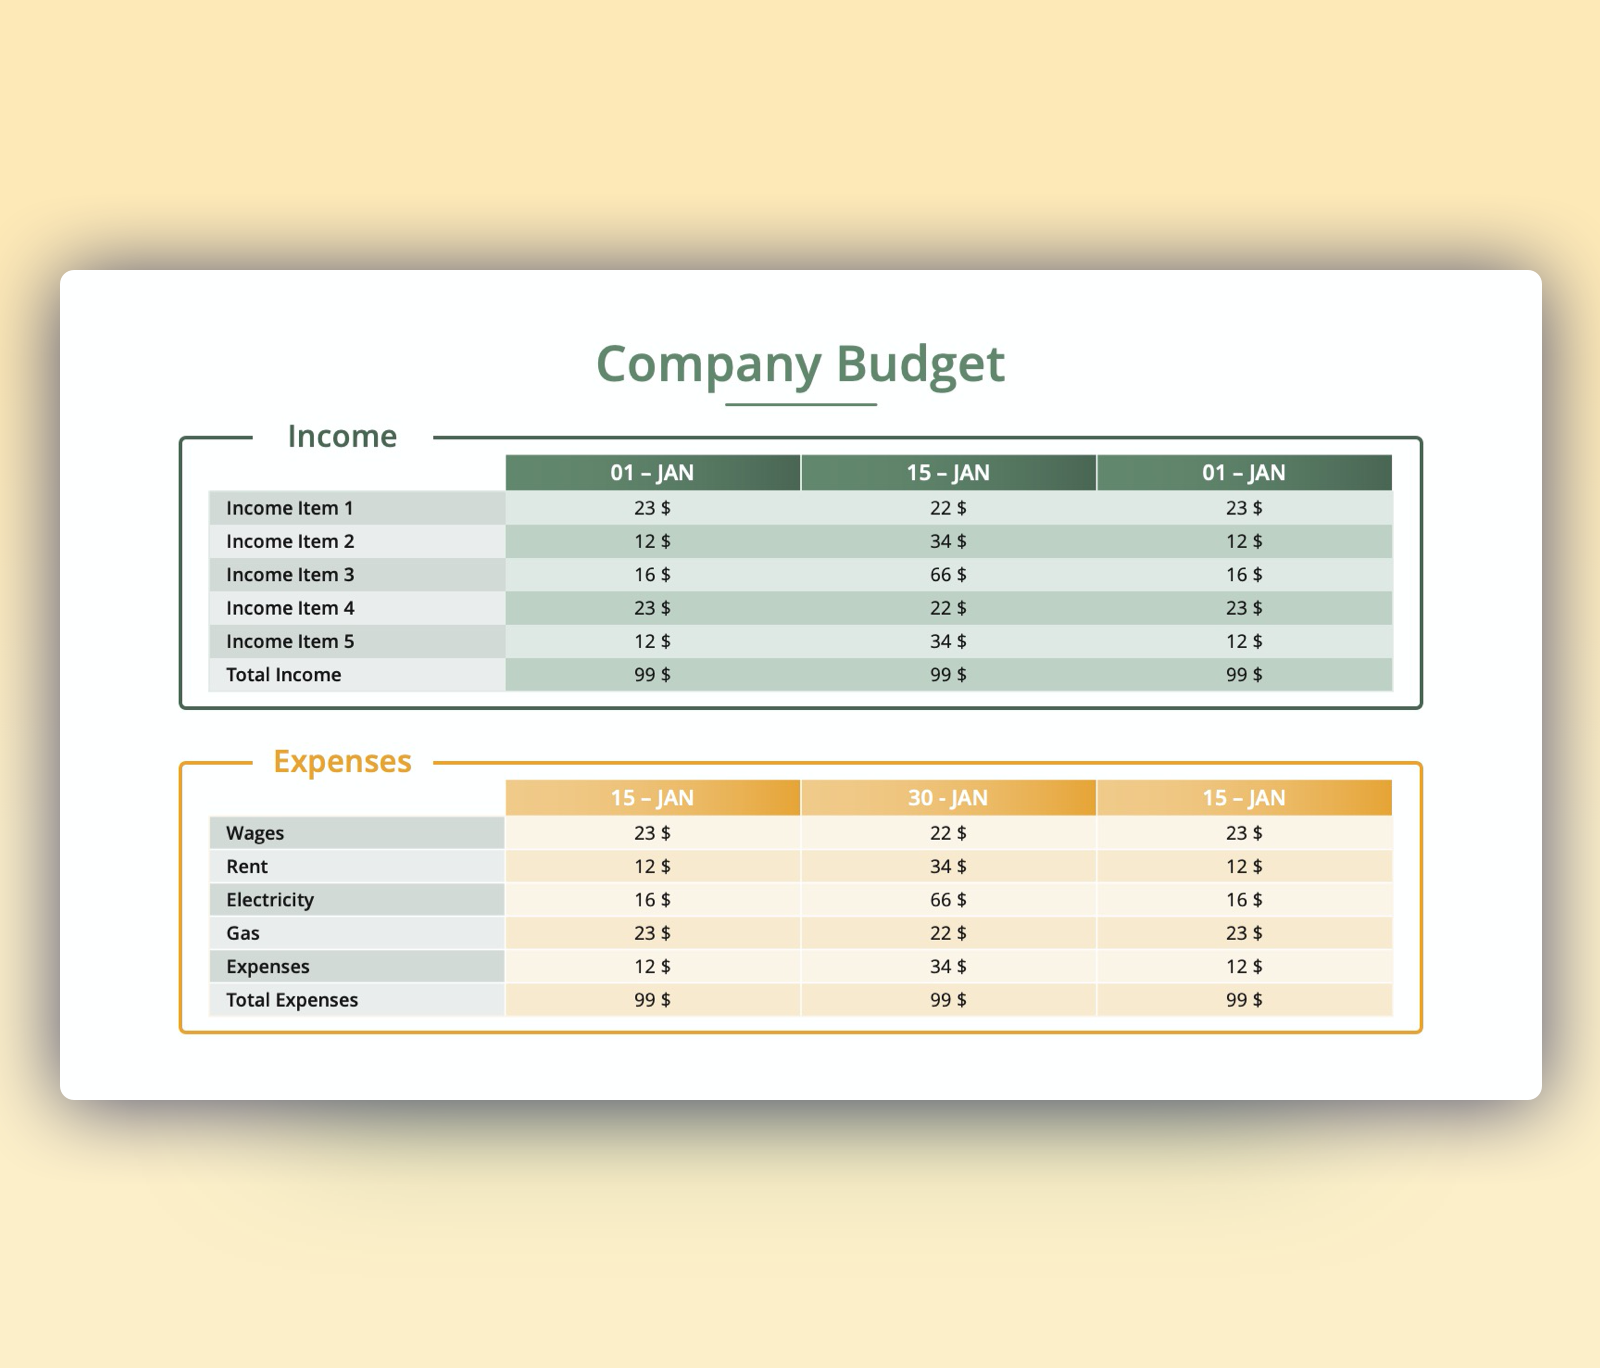 Company Budget Tables (Income and Expenses) PPT Slide